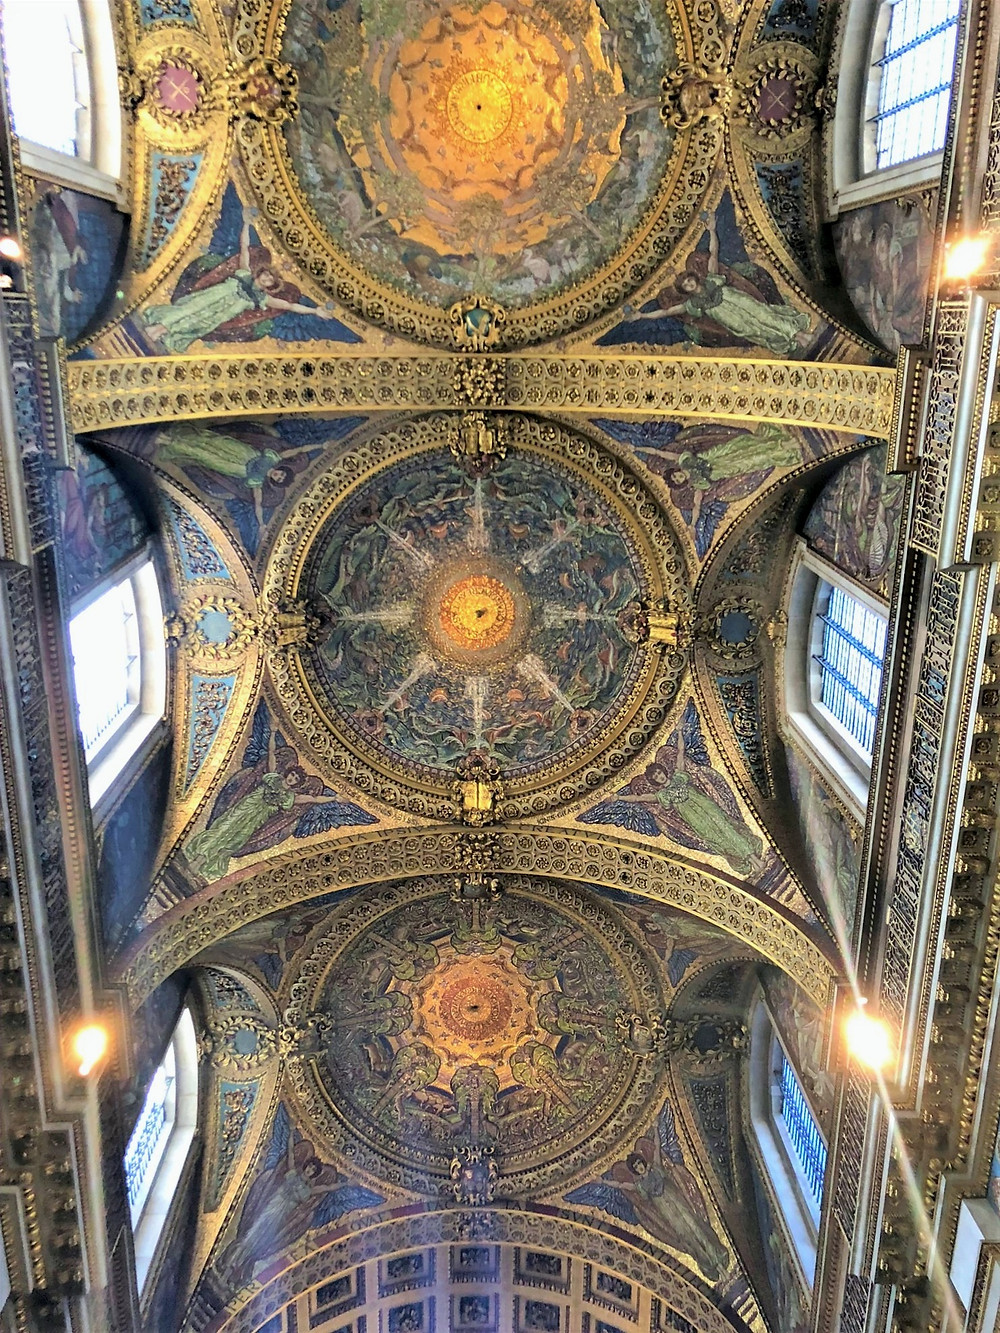 The vault of the quire in St Paul's Cathedral is decorated with mosaics created by William Blake Richmond